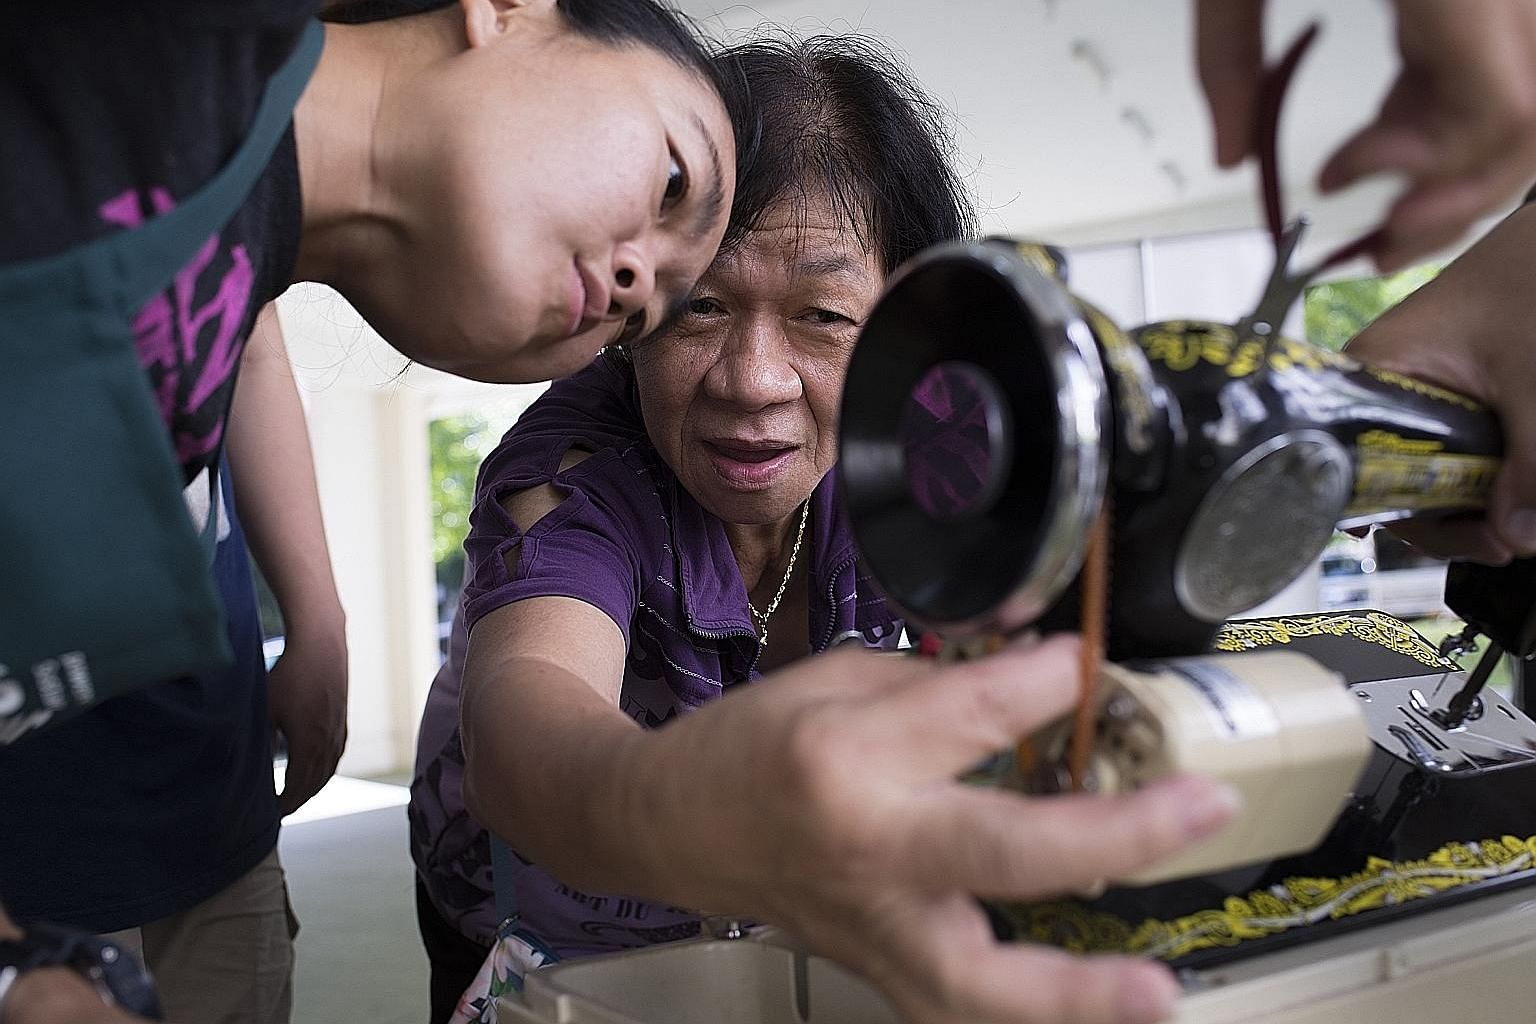 Repair Kopitiam sets up shop in a void deck in Jurong West and Tampines on the last Sunday of every month and participants can pick up repair skills from volunteer coaches. The Singapore Really Really Free Market is a roving market where everything f